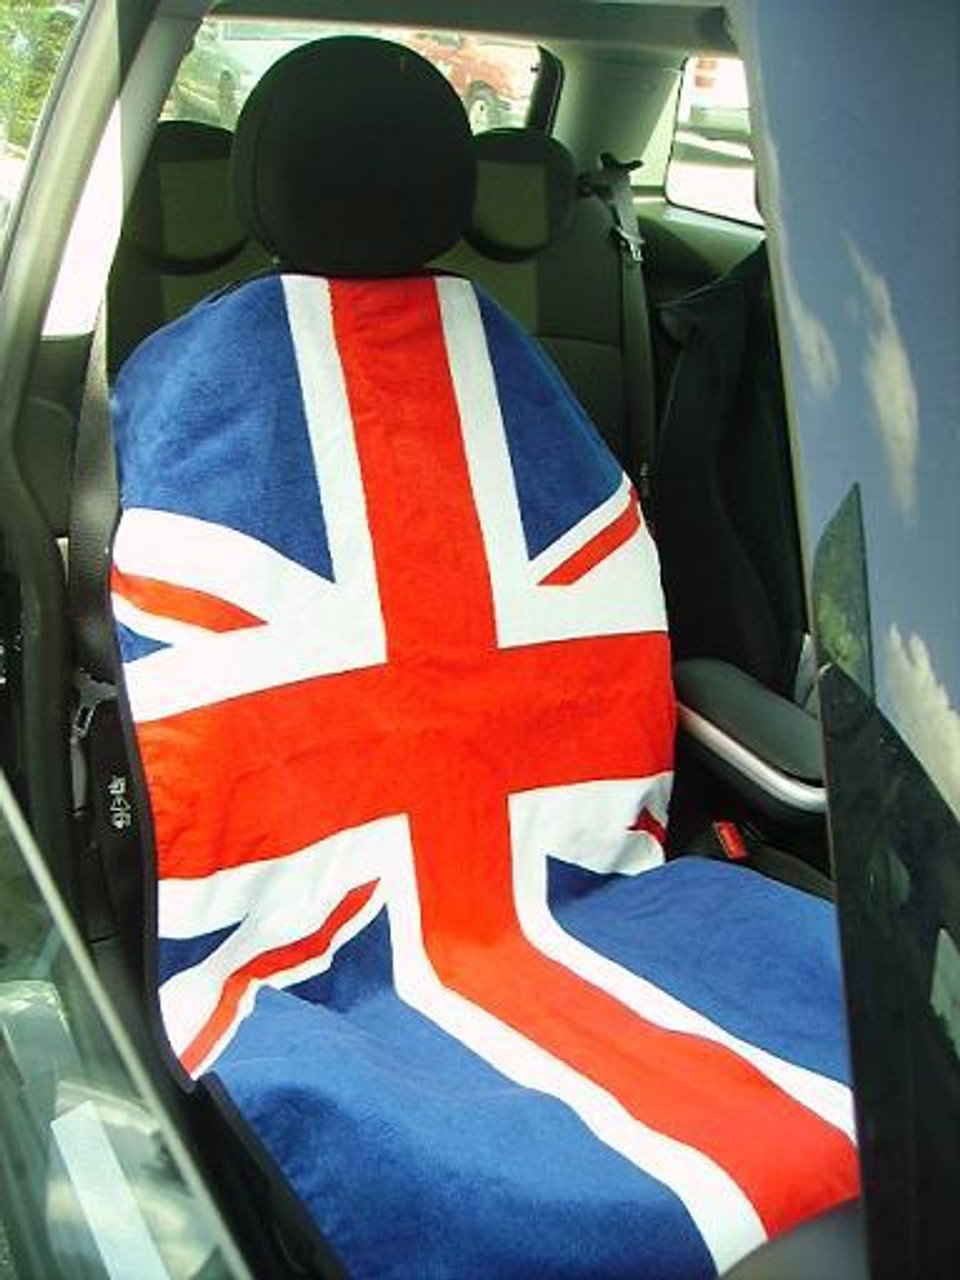 Mini Cooper Union Jack Red White And Blue Car Seat Cover Towel